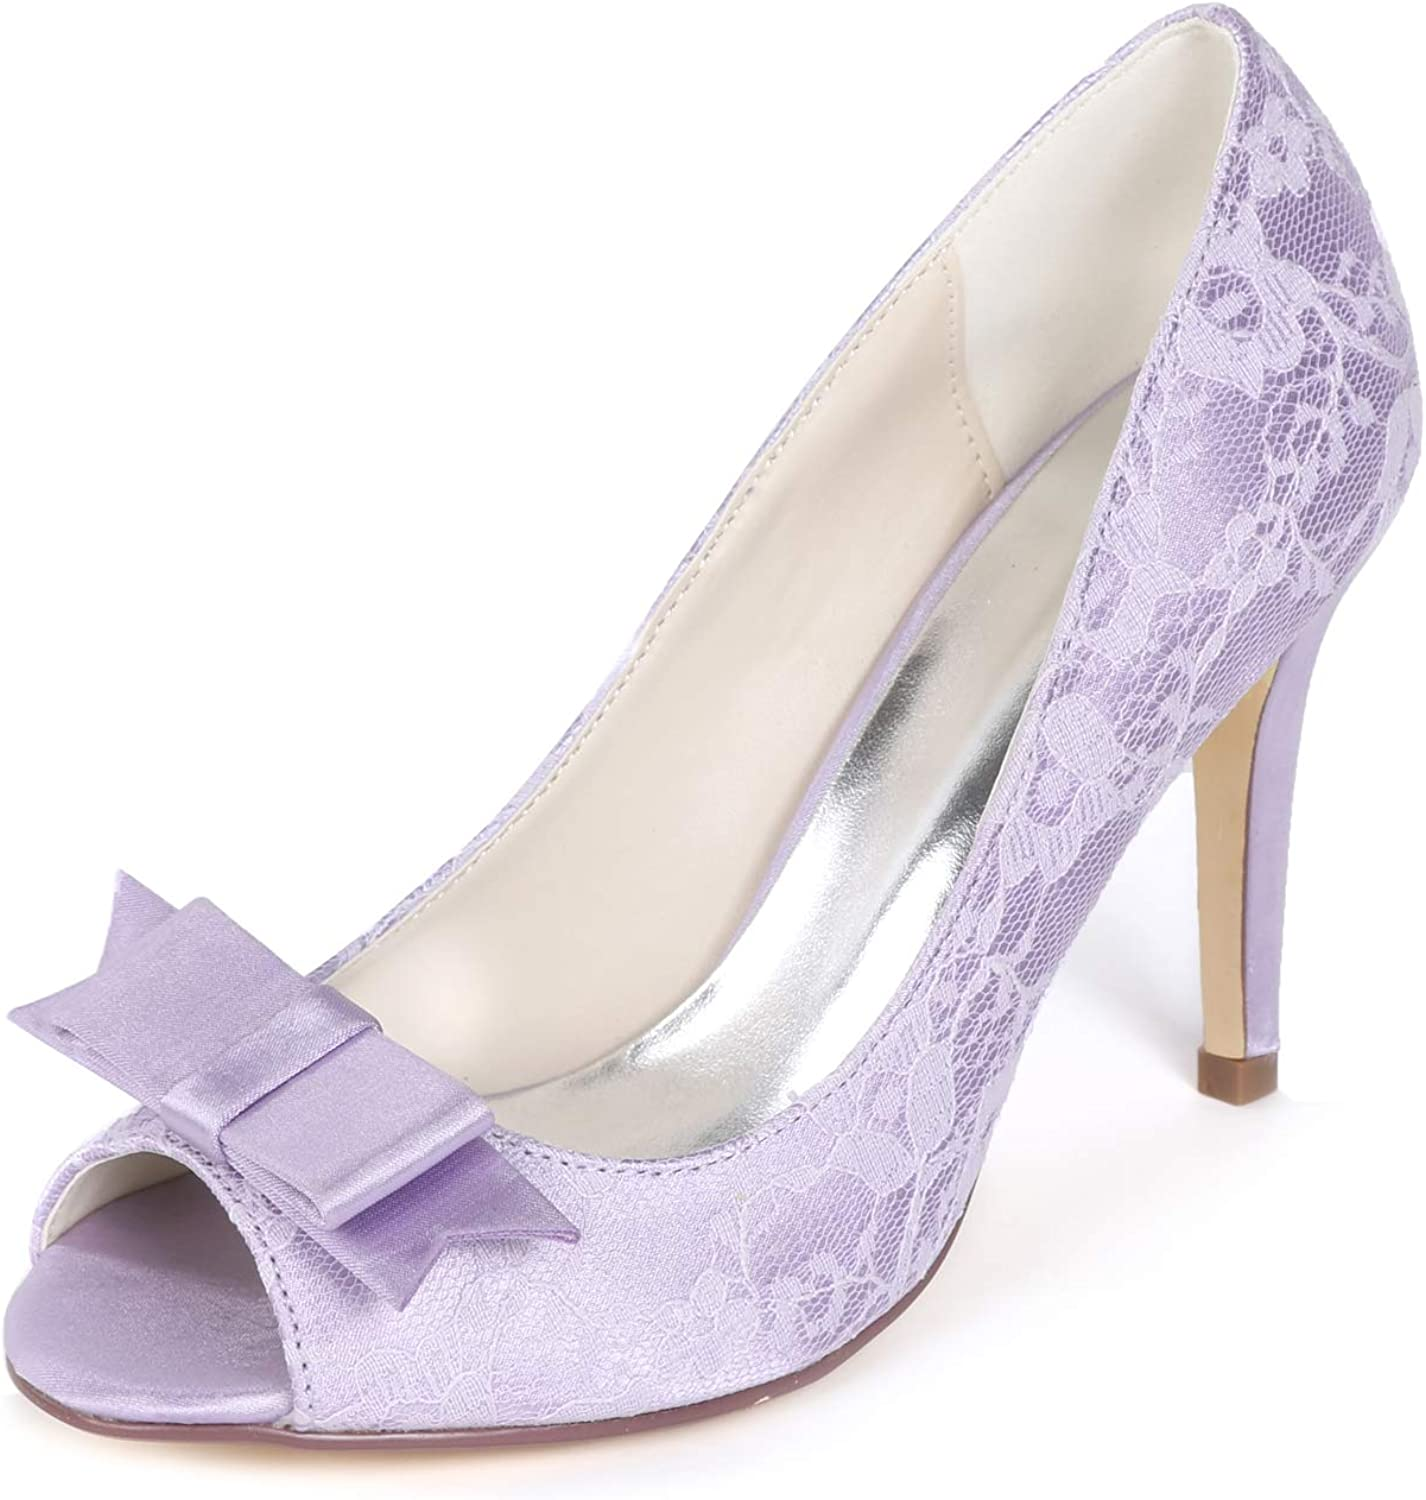 Creativesugar Women's lace Heels, Open Toe with Bow Sweet Wedding shoes, Bridal Bridesmaid Dress Prom Pumps Lavender